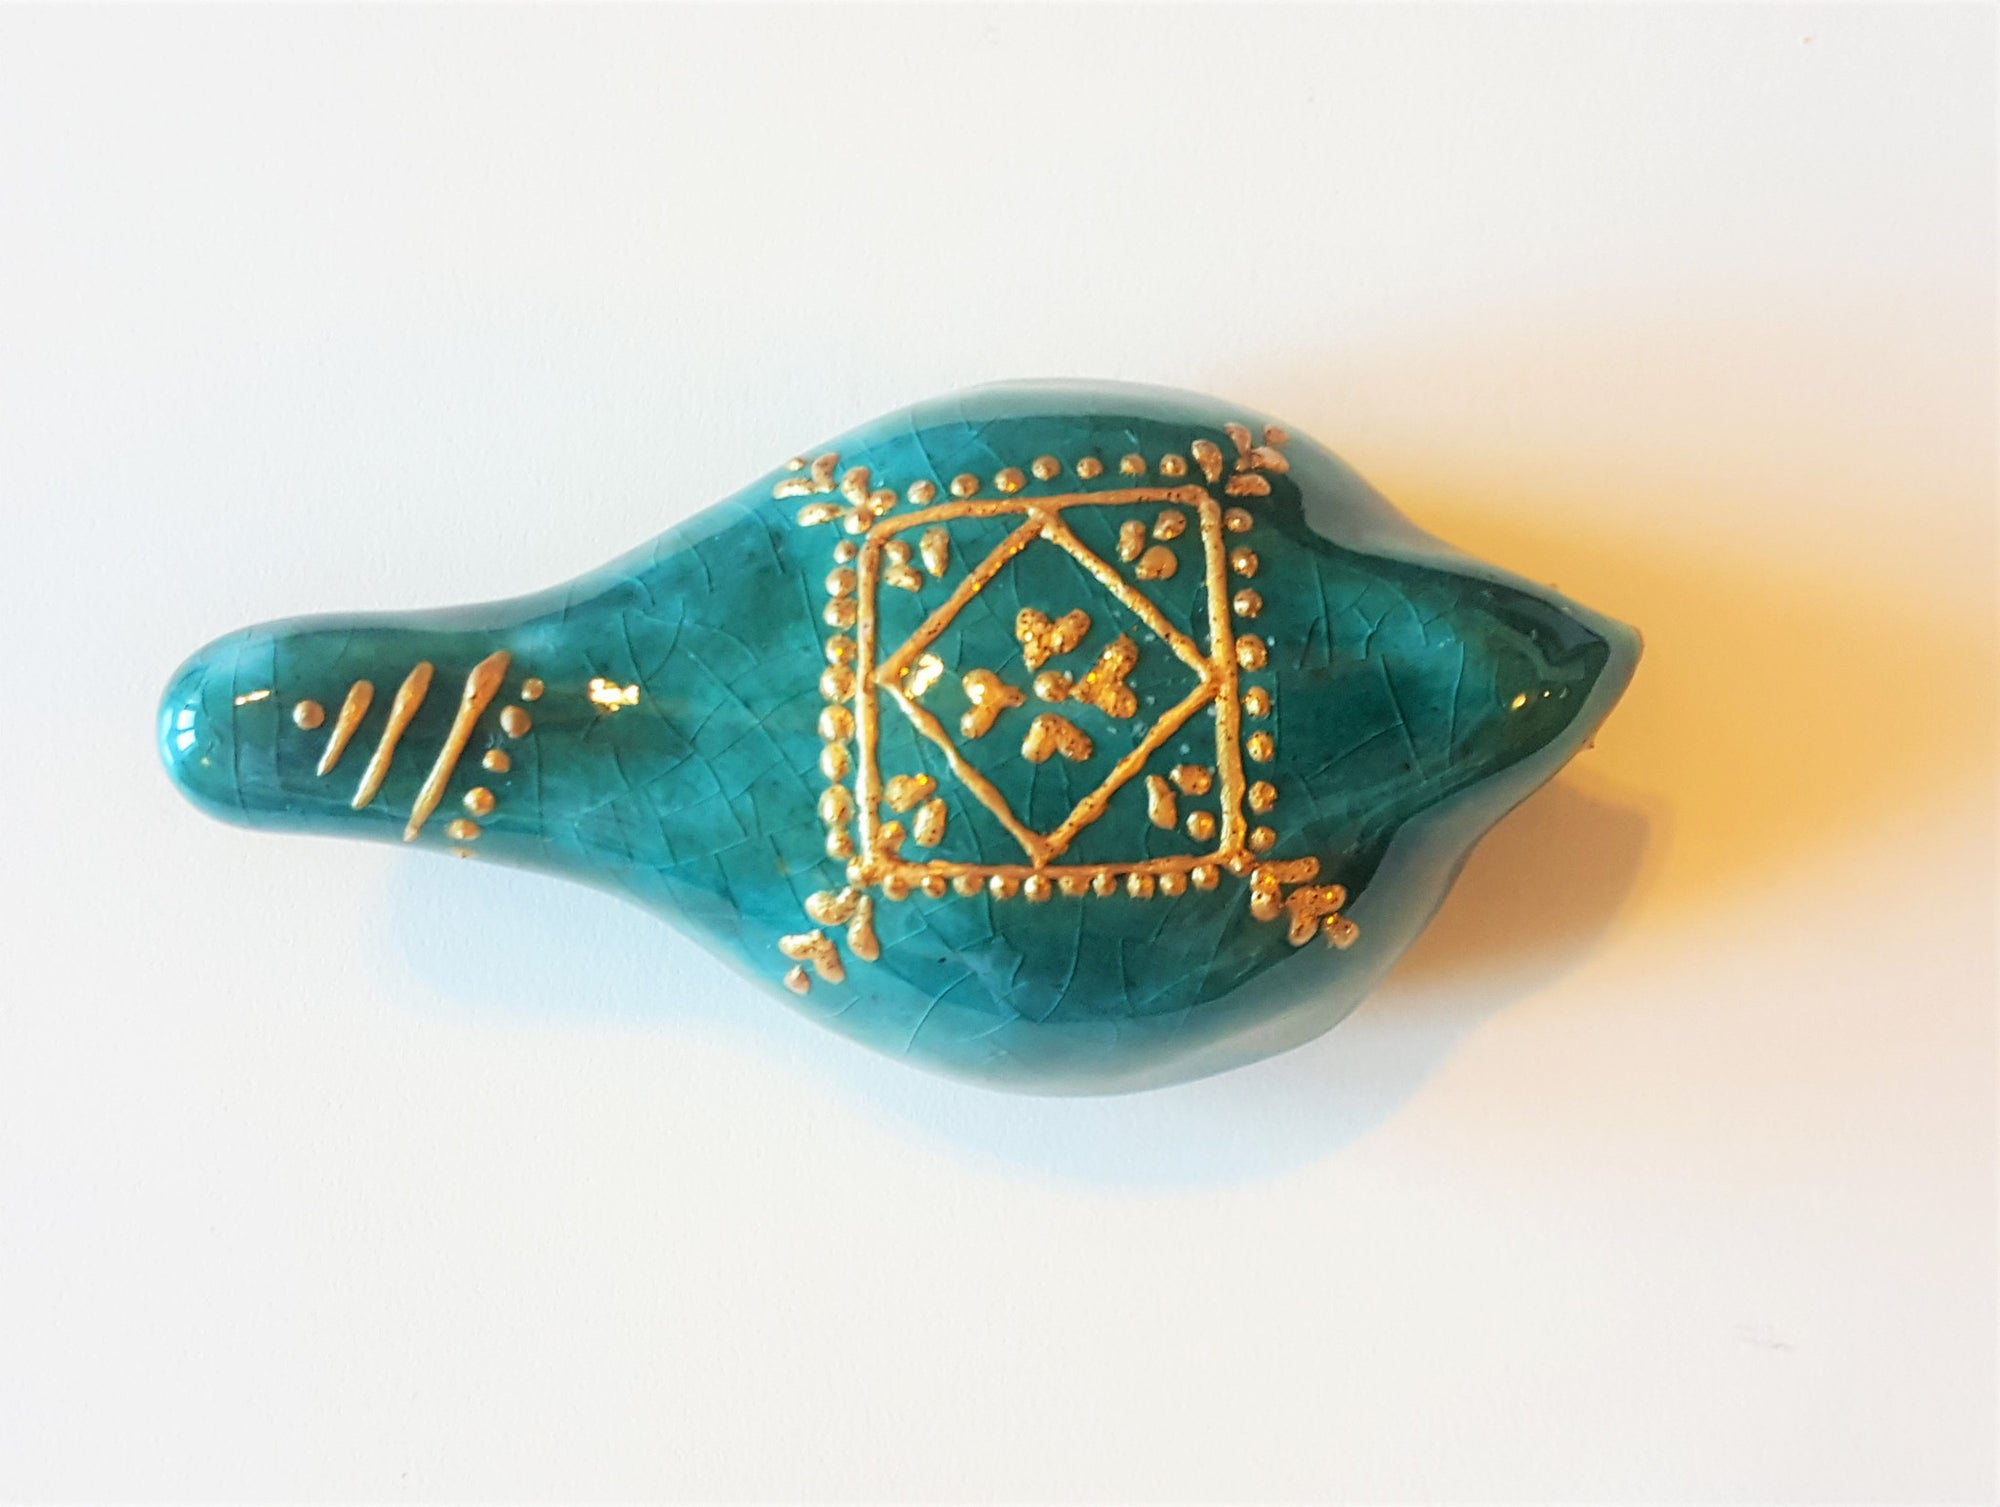 Handmade Turquoise Persian bird sculpture